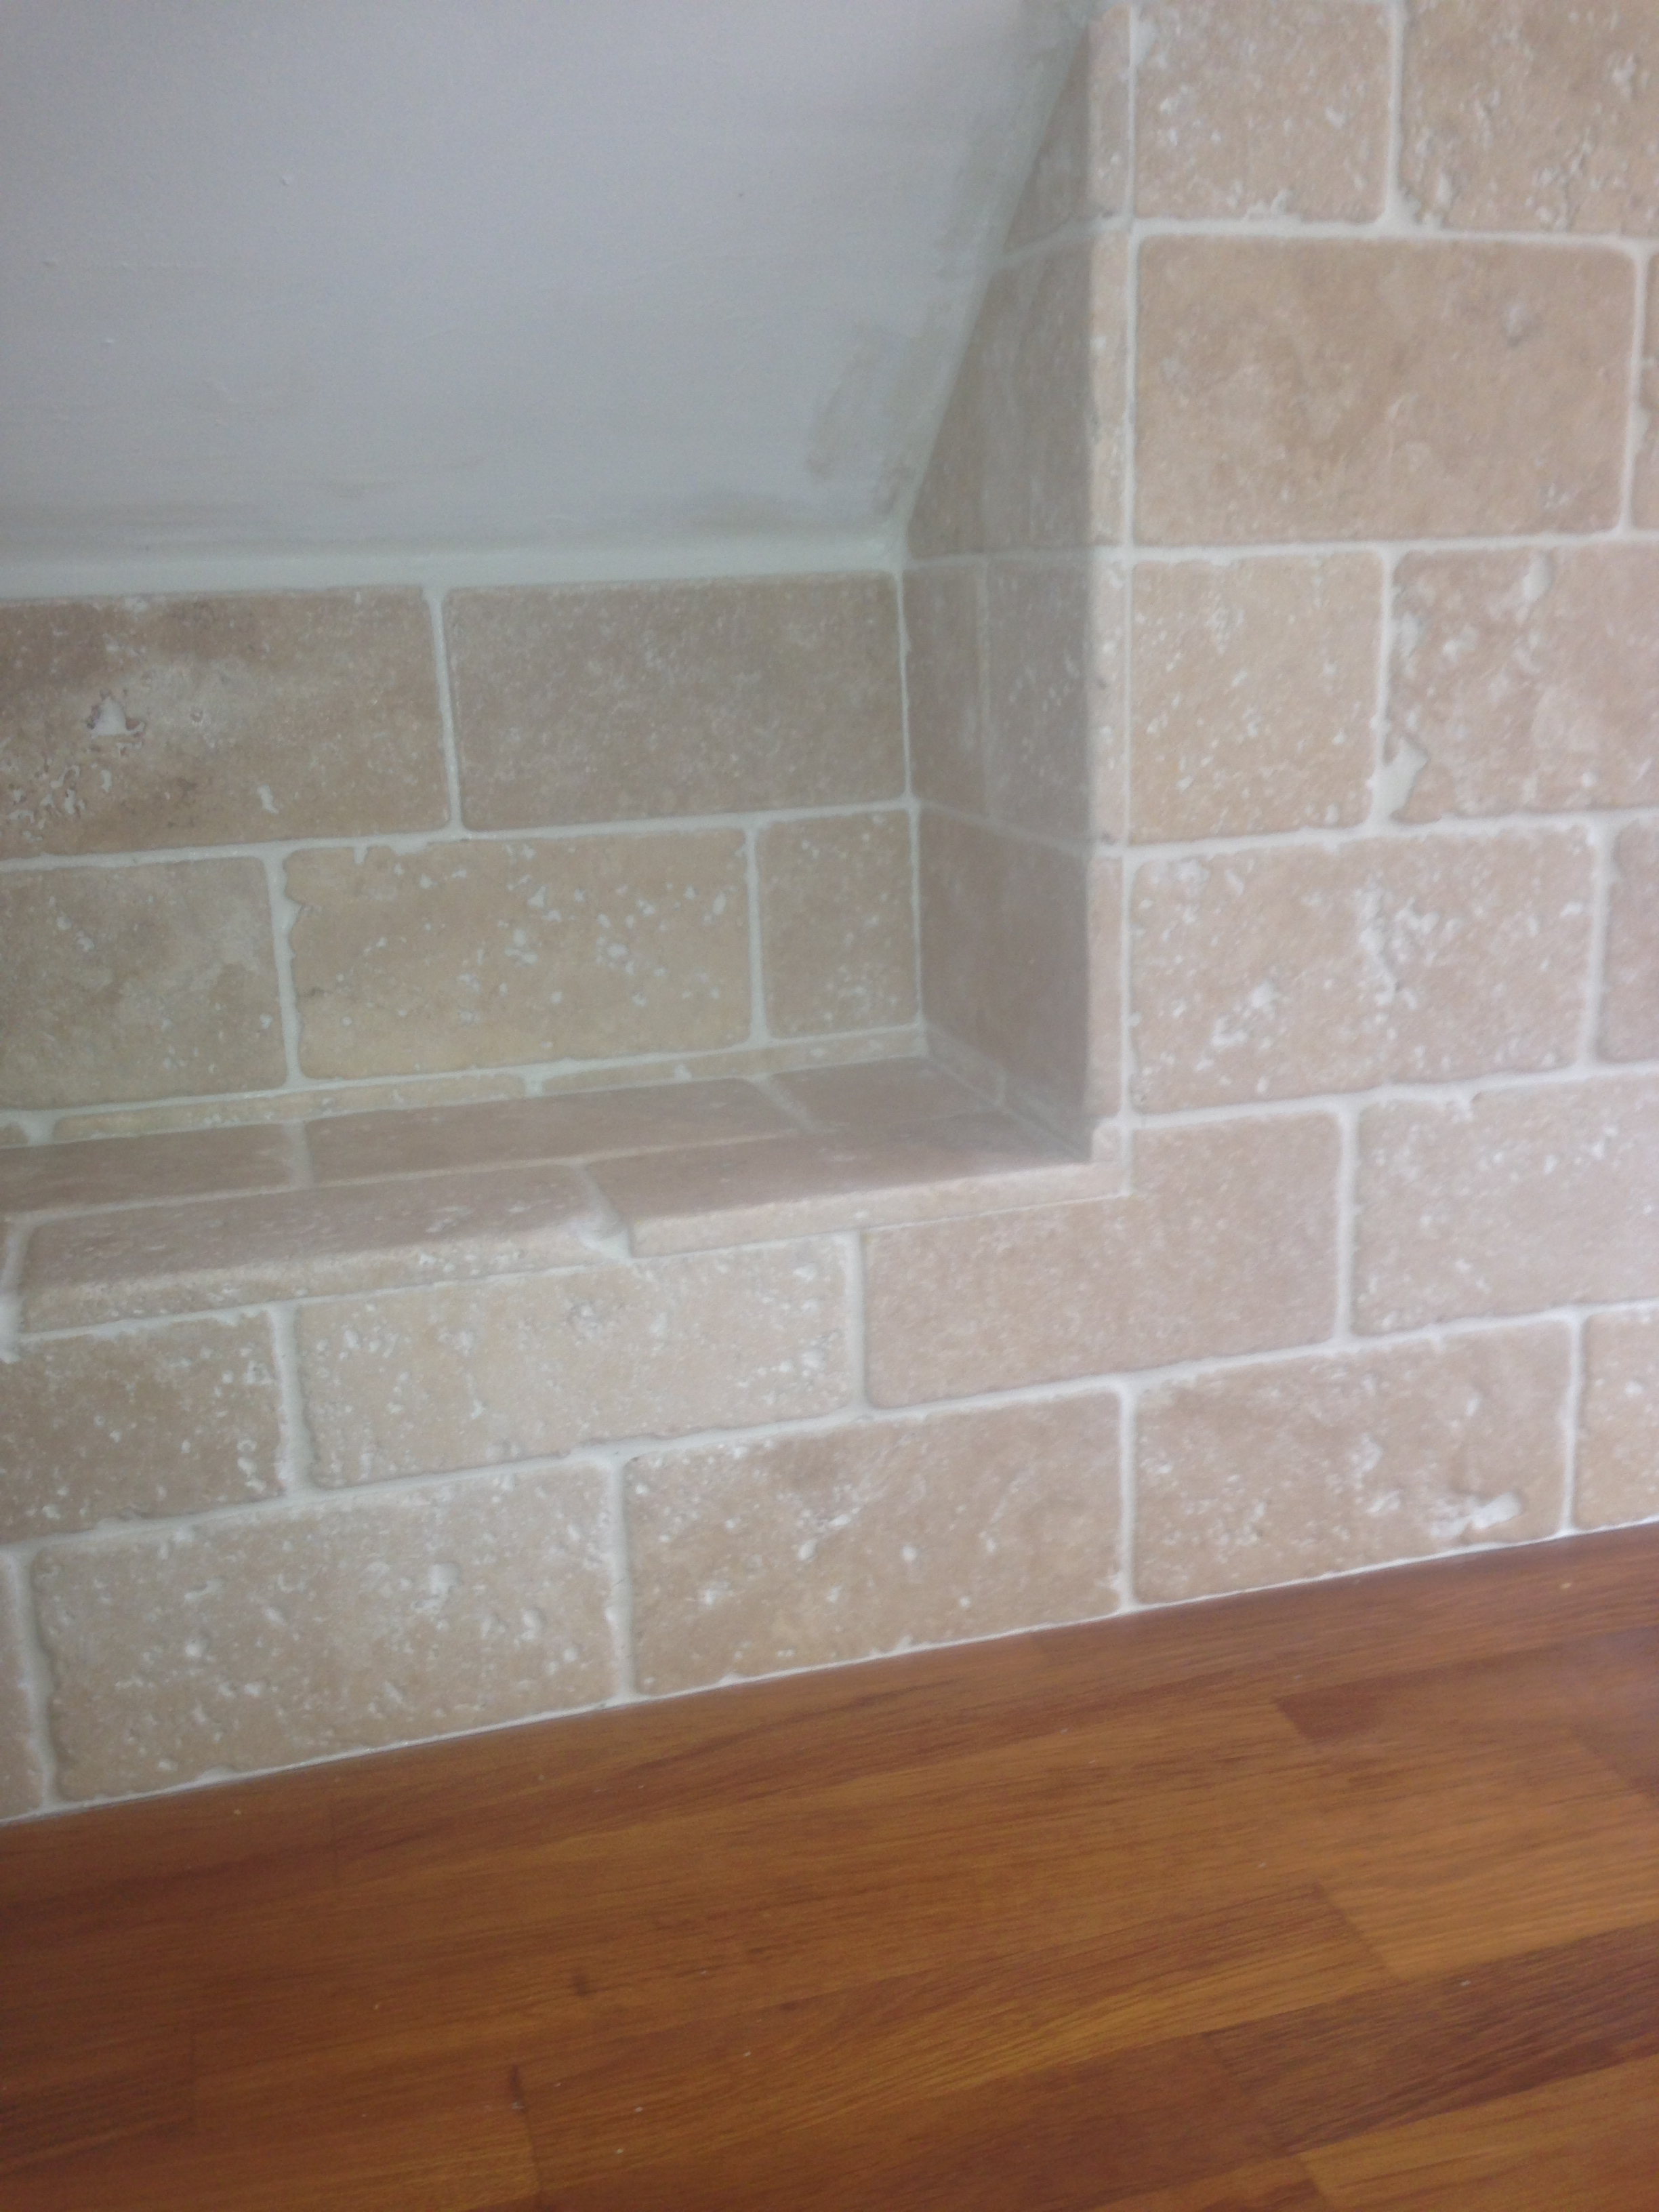 Gallery 1st choice tiling plastering travertine wall tiles kitchen oakwood leeds dailygadgetfo Image collections